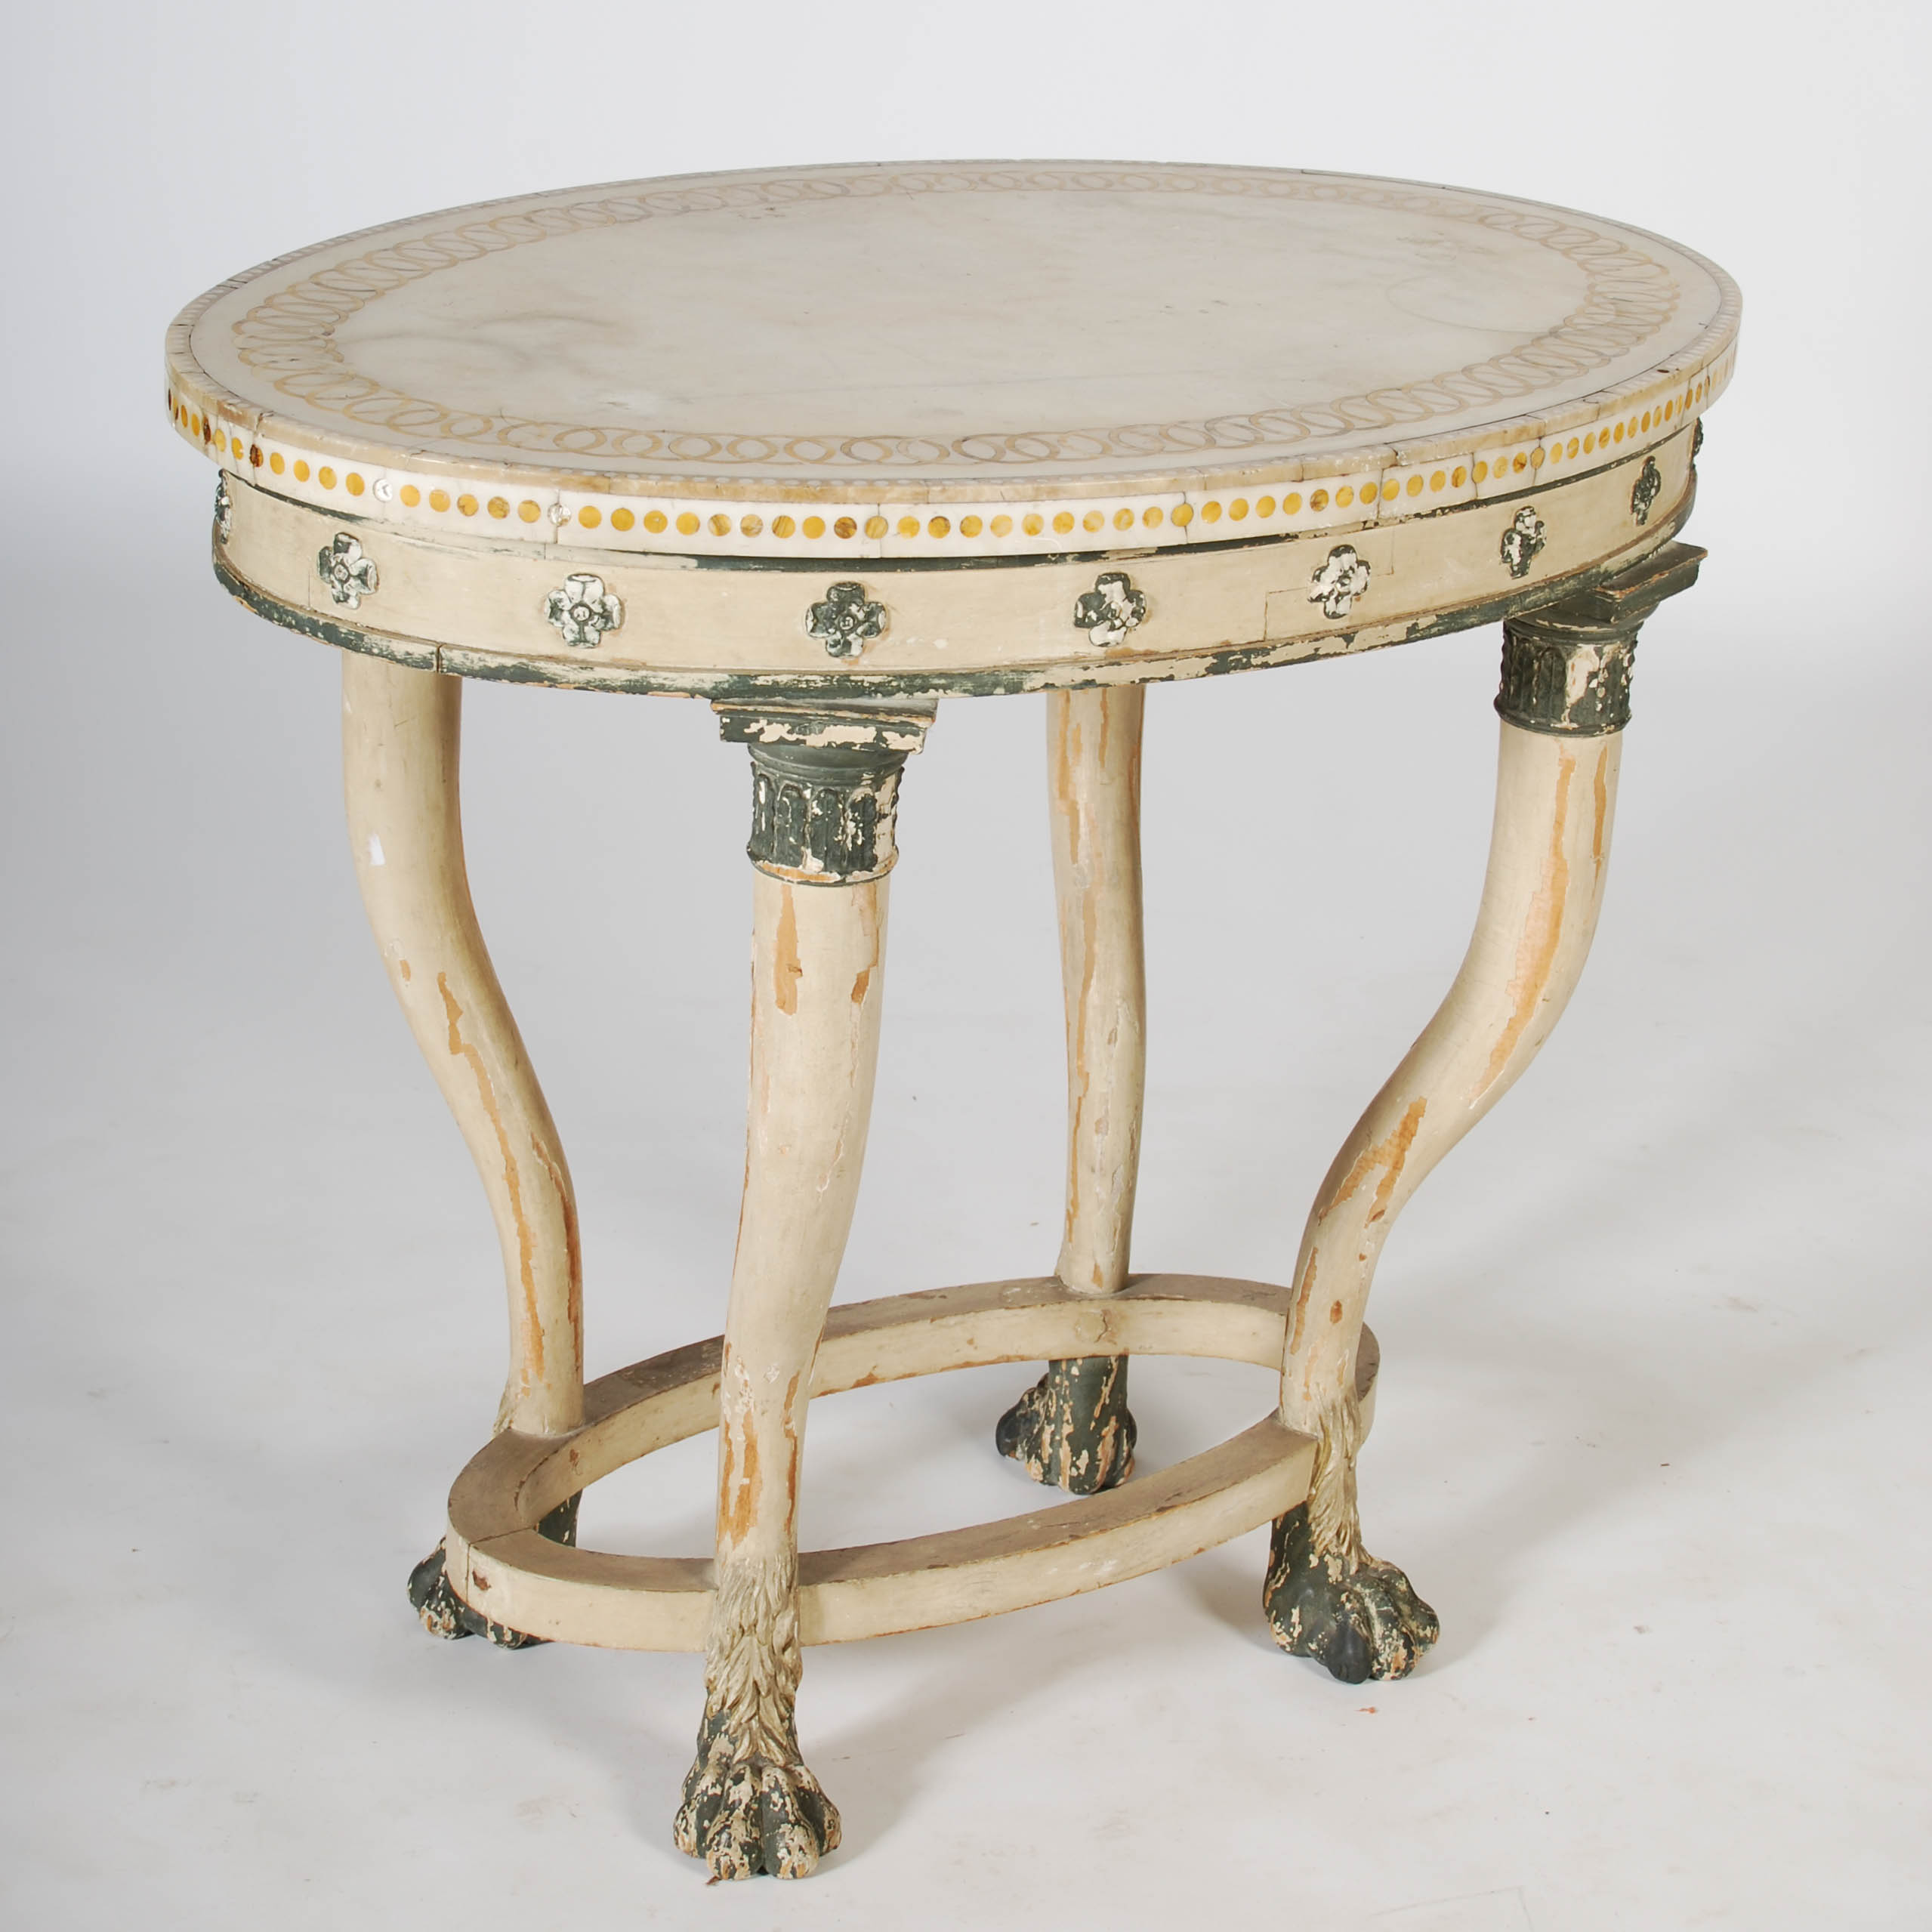 Lot 105 - A 19th century North European painted oval centre table, the white marble with an inlaid